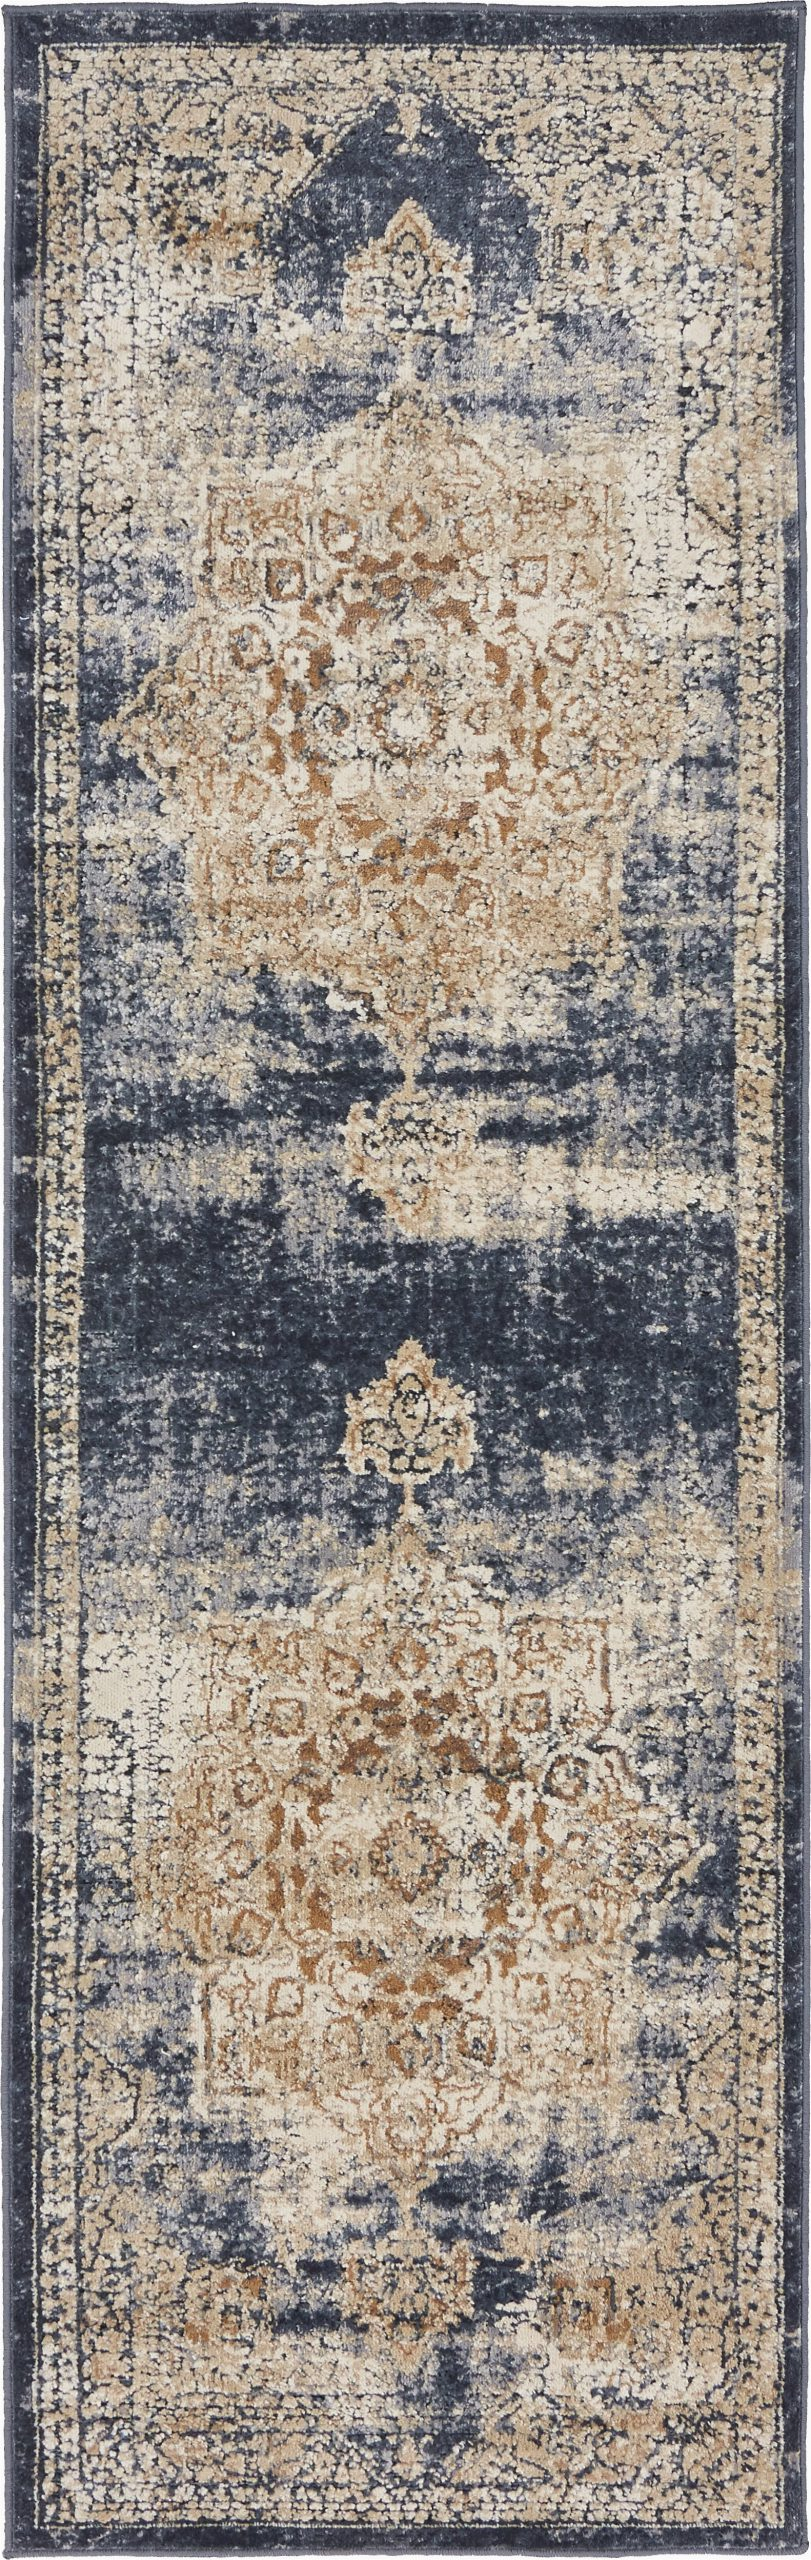 Big Lots 8 X 10 area Rugs Modern Farmhouse Runner area Rugs You Ll Love In 2020